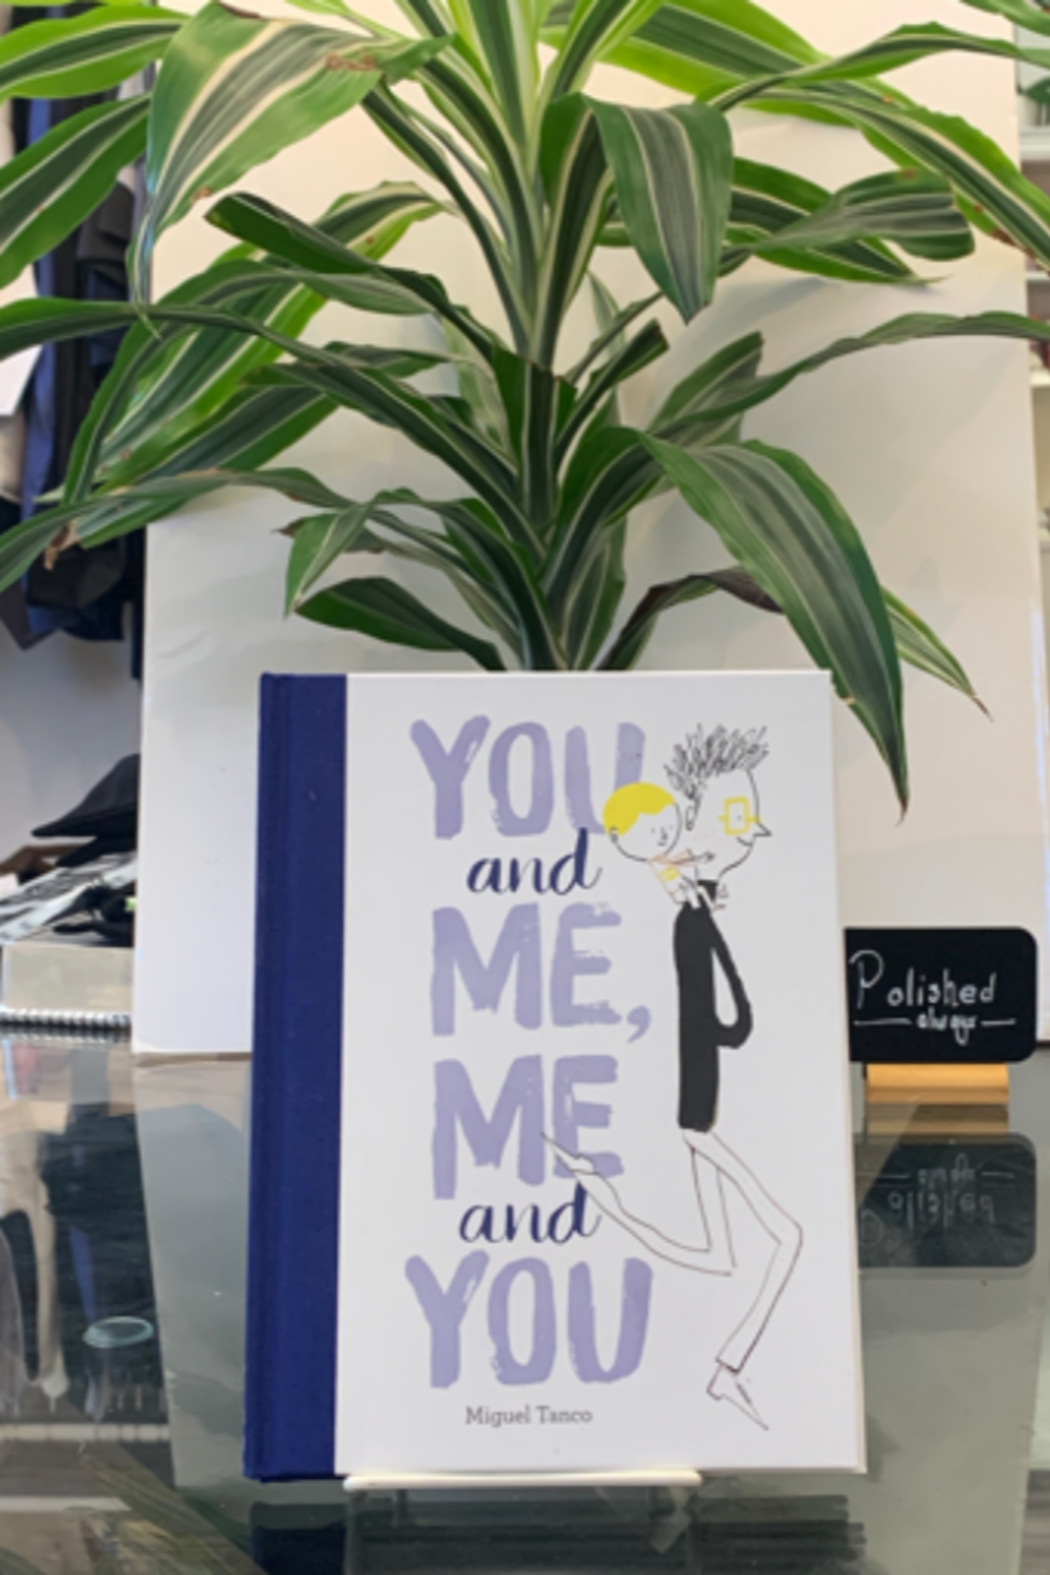 Miguel Tanco  You and Me, Me and You - Main Image